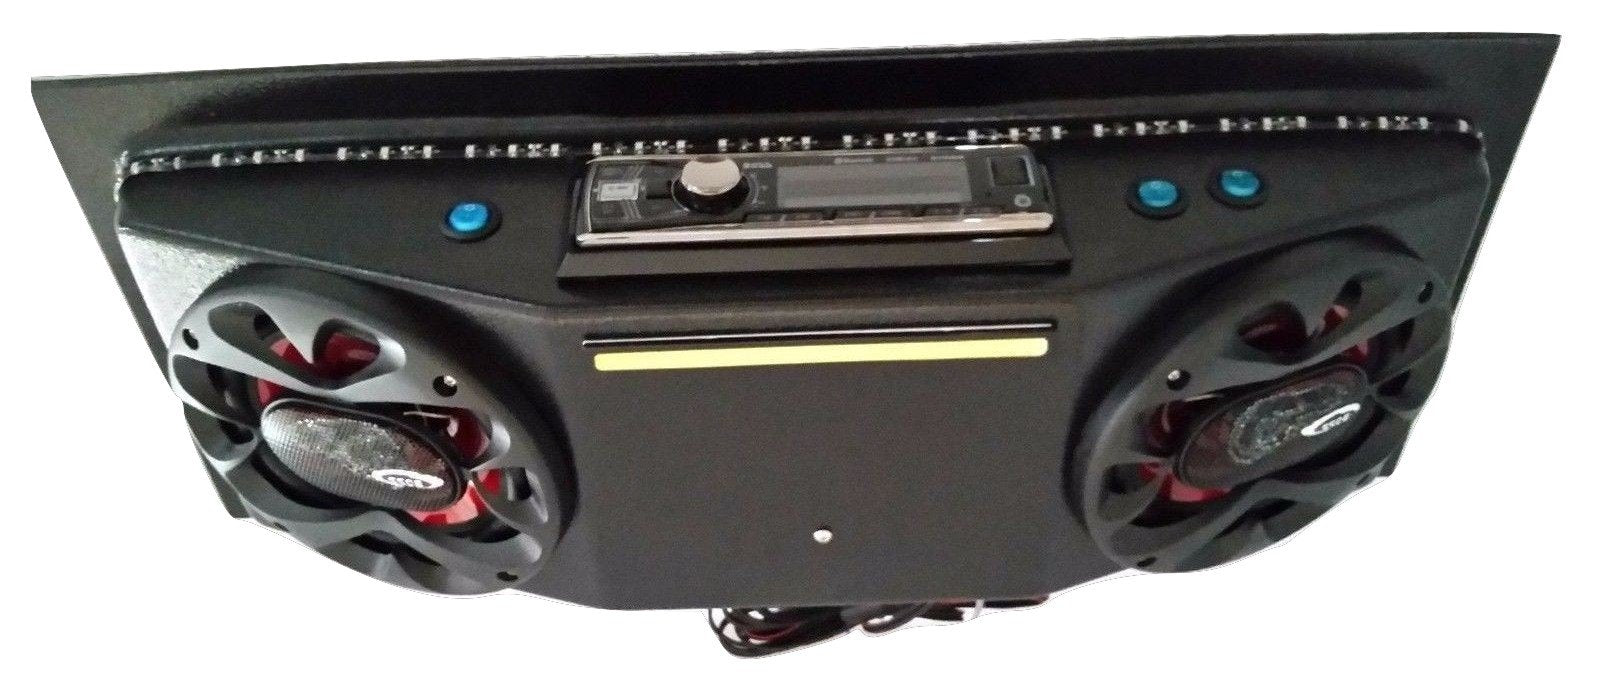 Custom Golf CART UTV Radio Overhead Stereo Console with Bluetooth